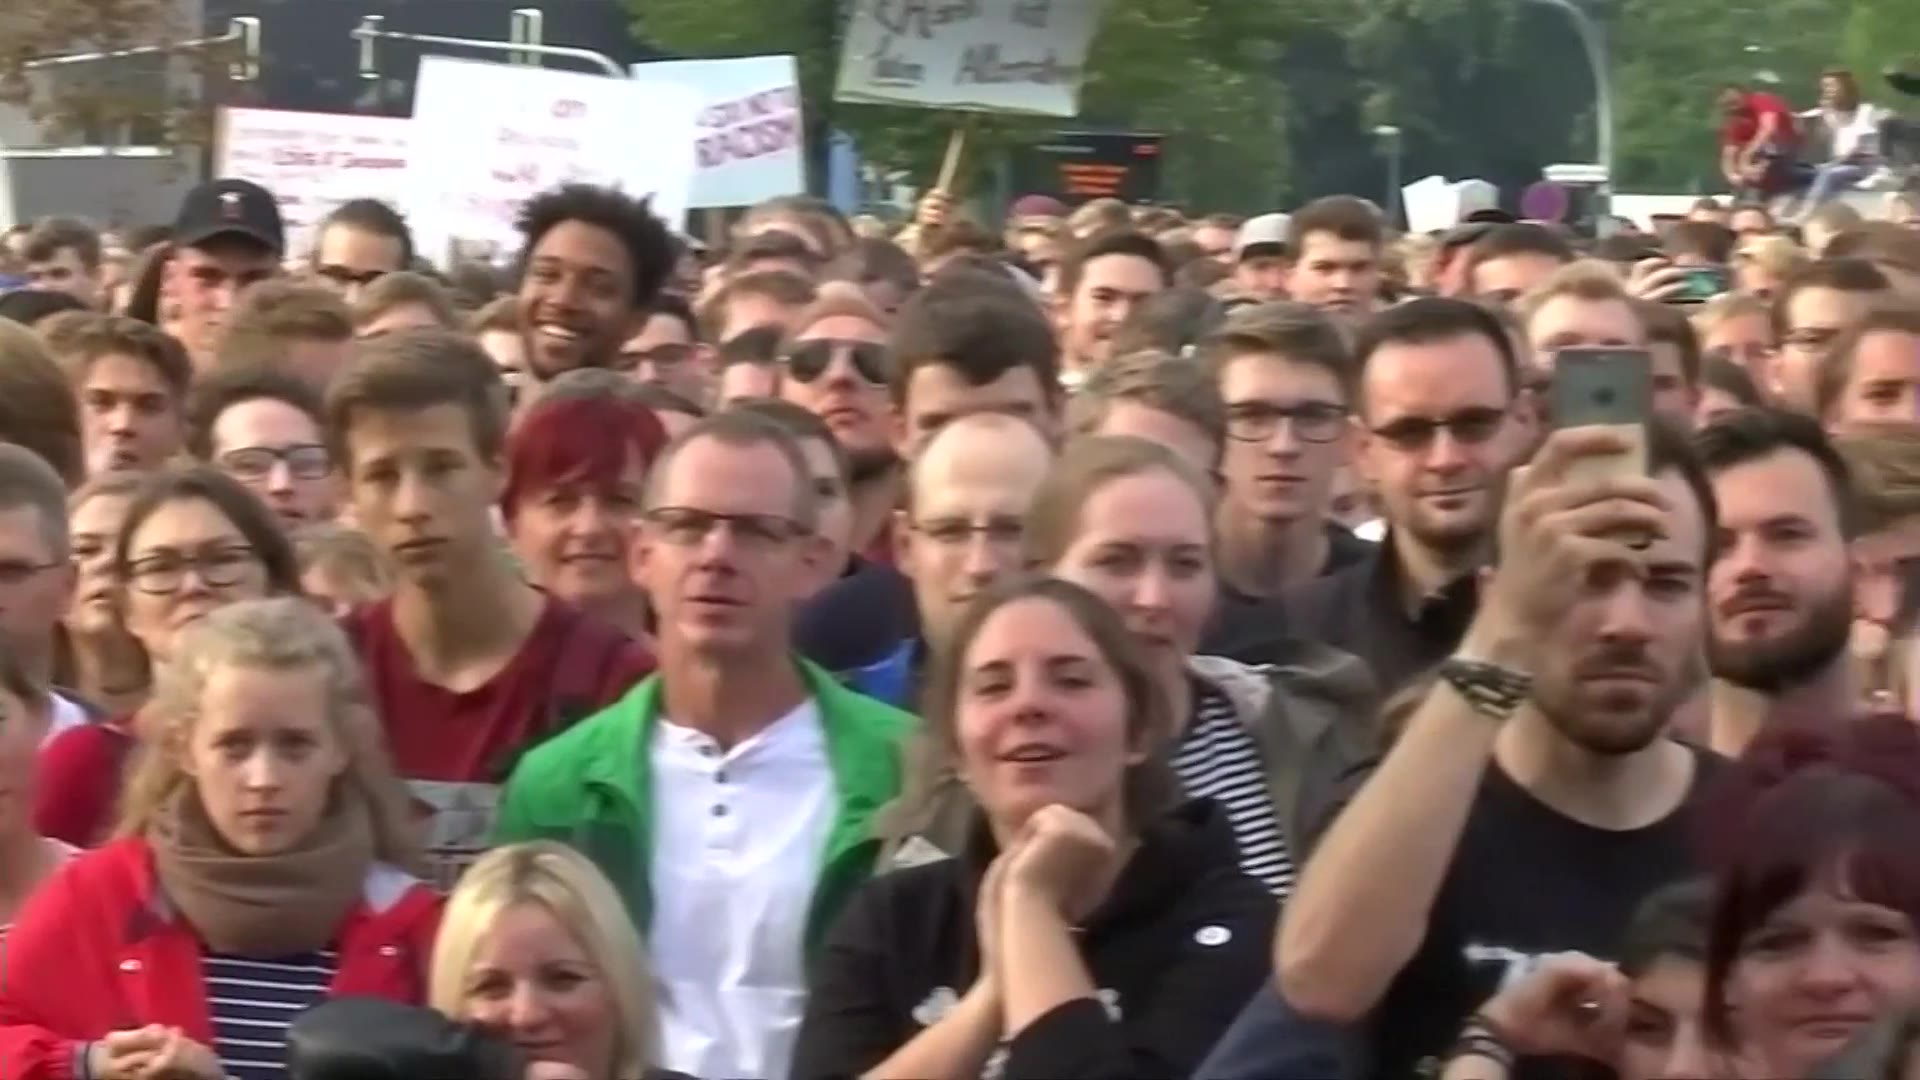 Video: Tens of thousans peacefully attend Chemnitz anti-racism concert